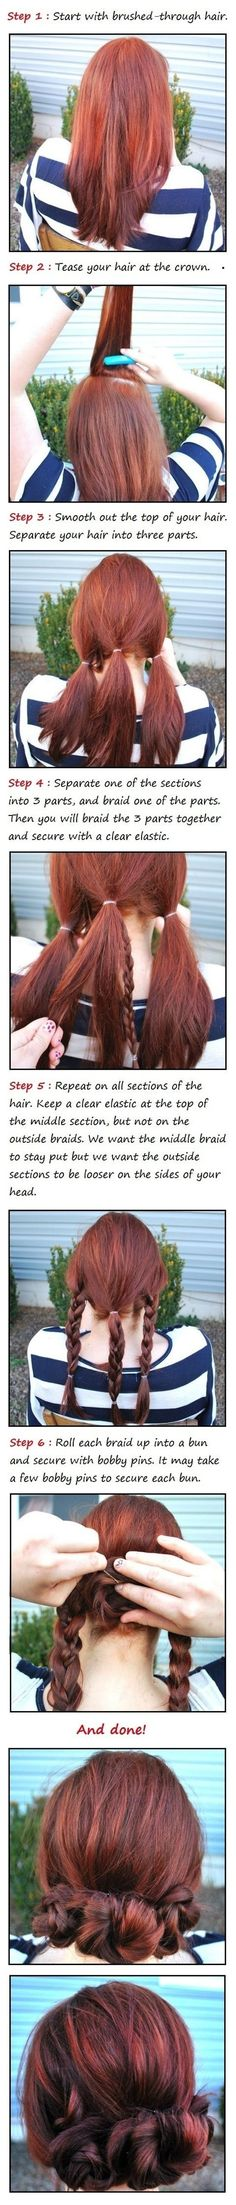 Simple braid buns make second-day hair even better than it was the day before. | 17 Ways To Never Have A Bad Hair DayAgain